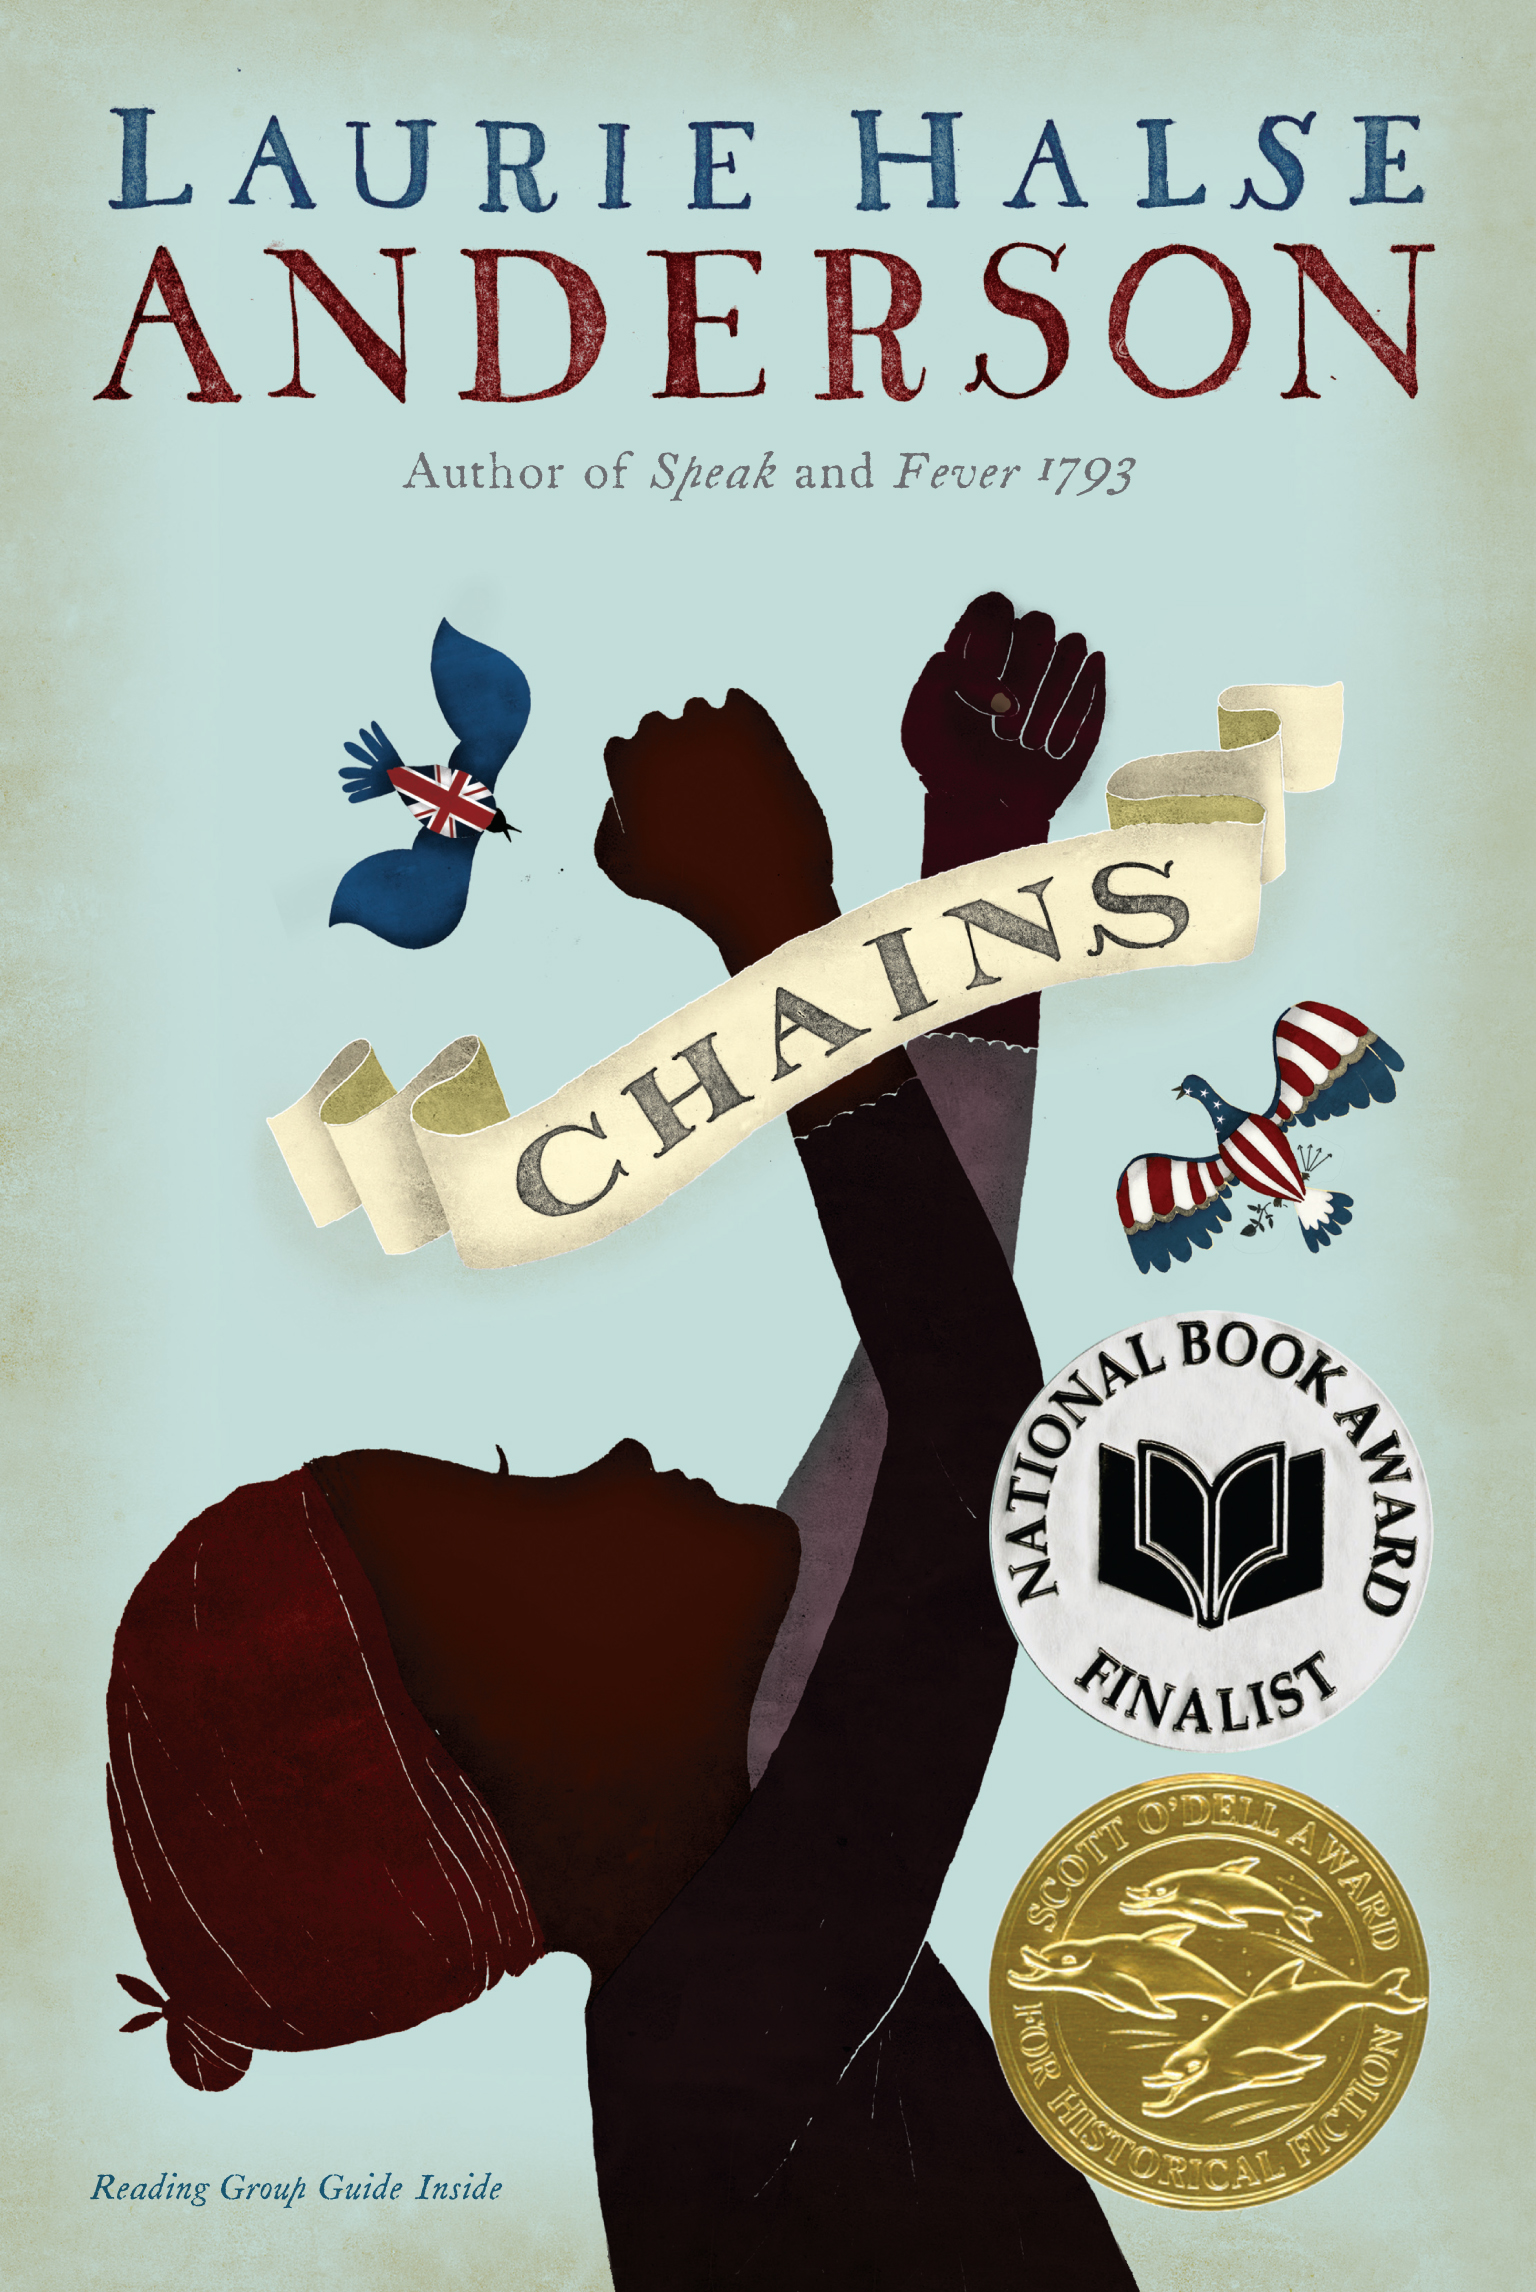 chains book by laurie halse anderson official publisher page rh simonandschuster com Chains Laurie Halse Anderson Timeline Chains Laurie Halse Anderson Quotes